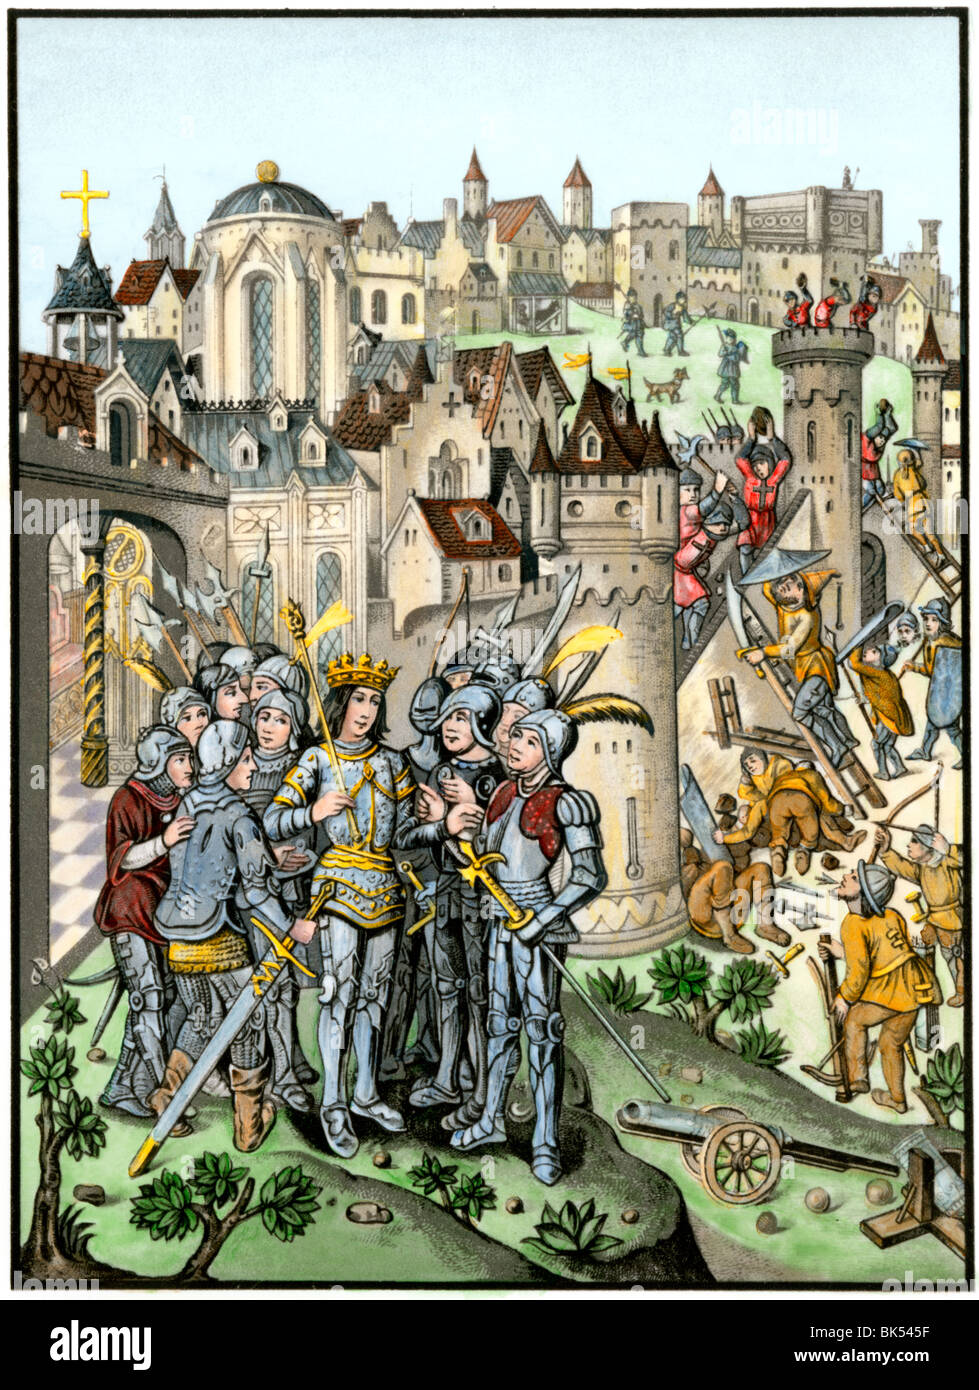 Siege of town defended by the Burgundians under Charles VI, Hundred Years' War. Hand-colored woodcut - Stock Image